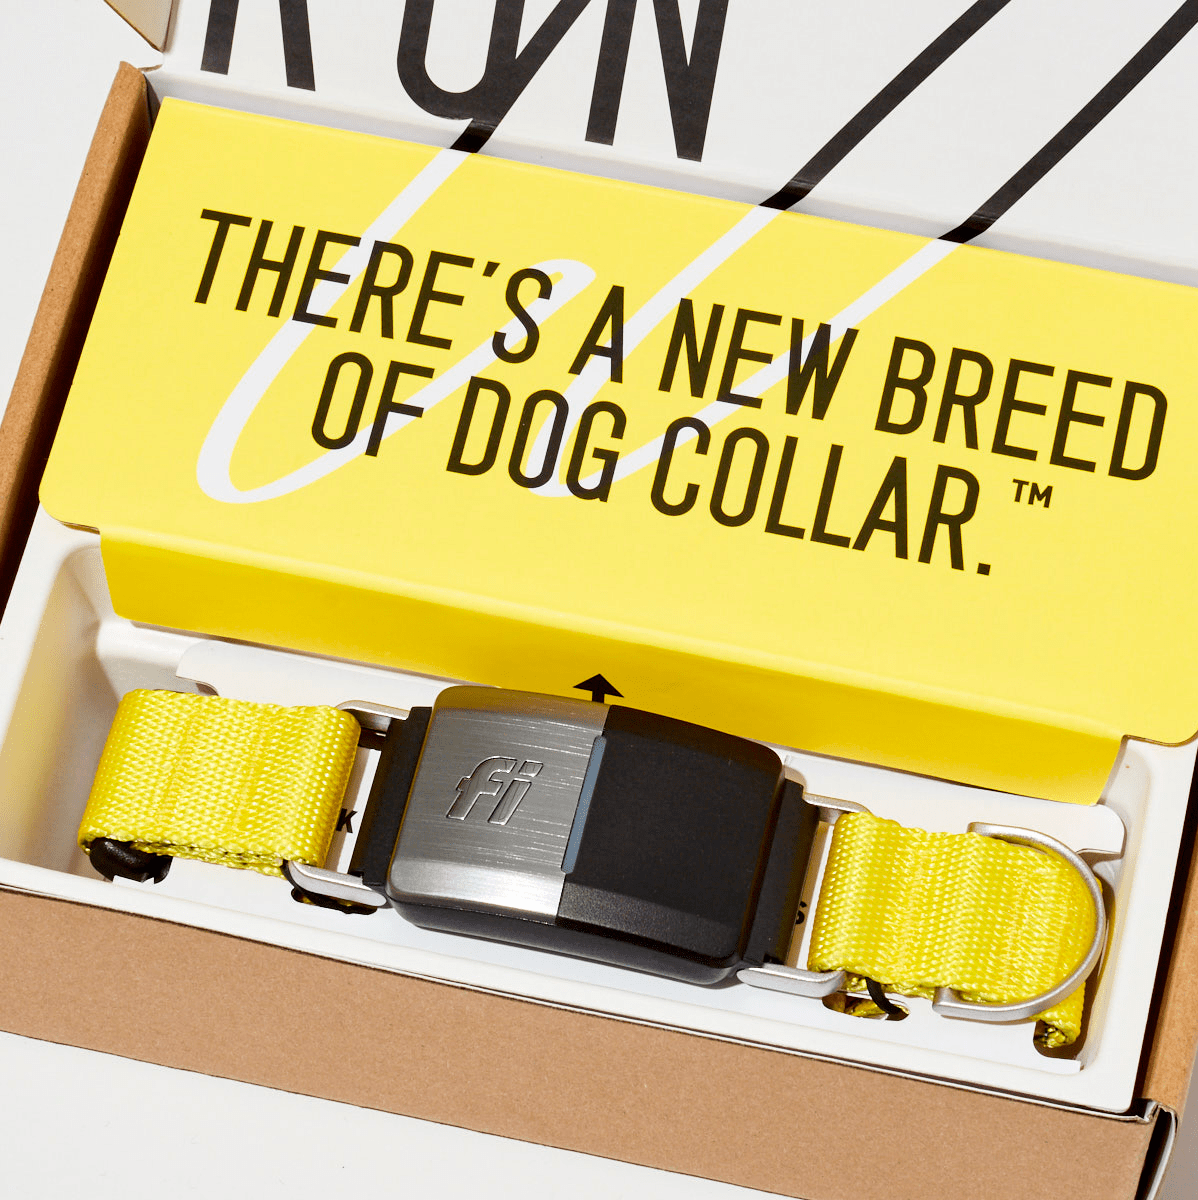 fi dog collar, gps dog collar, gifts for dog walkers